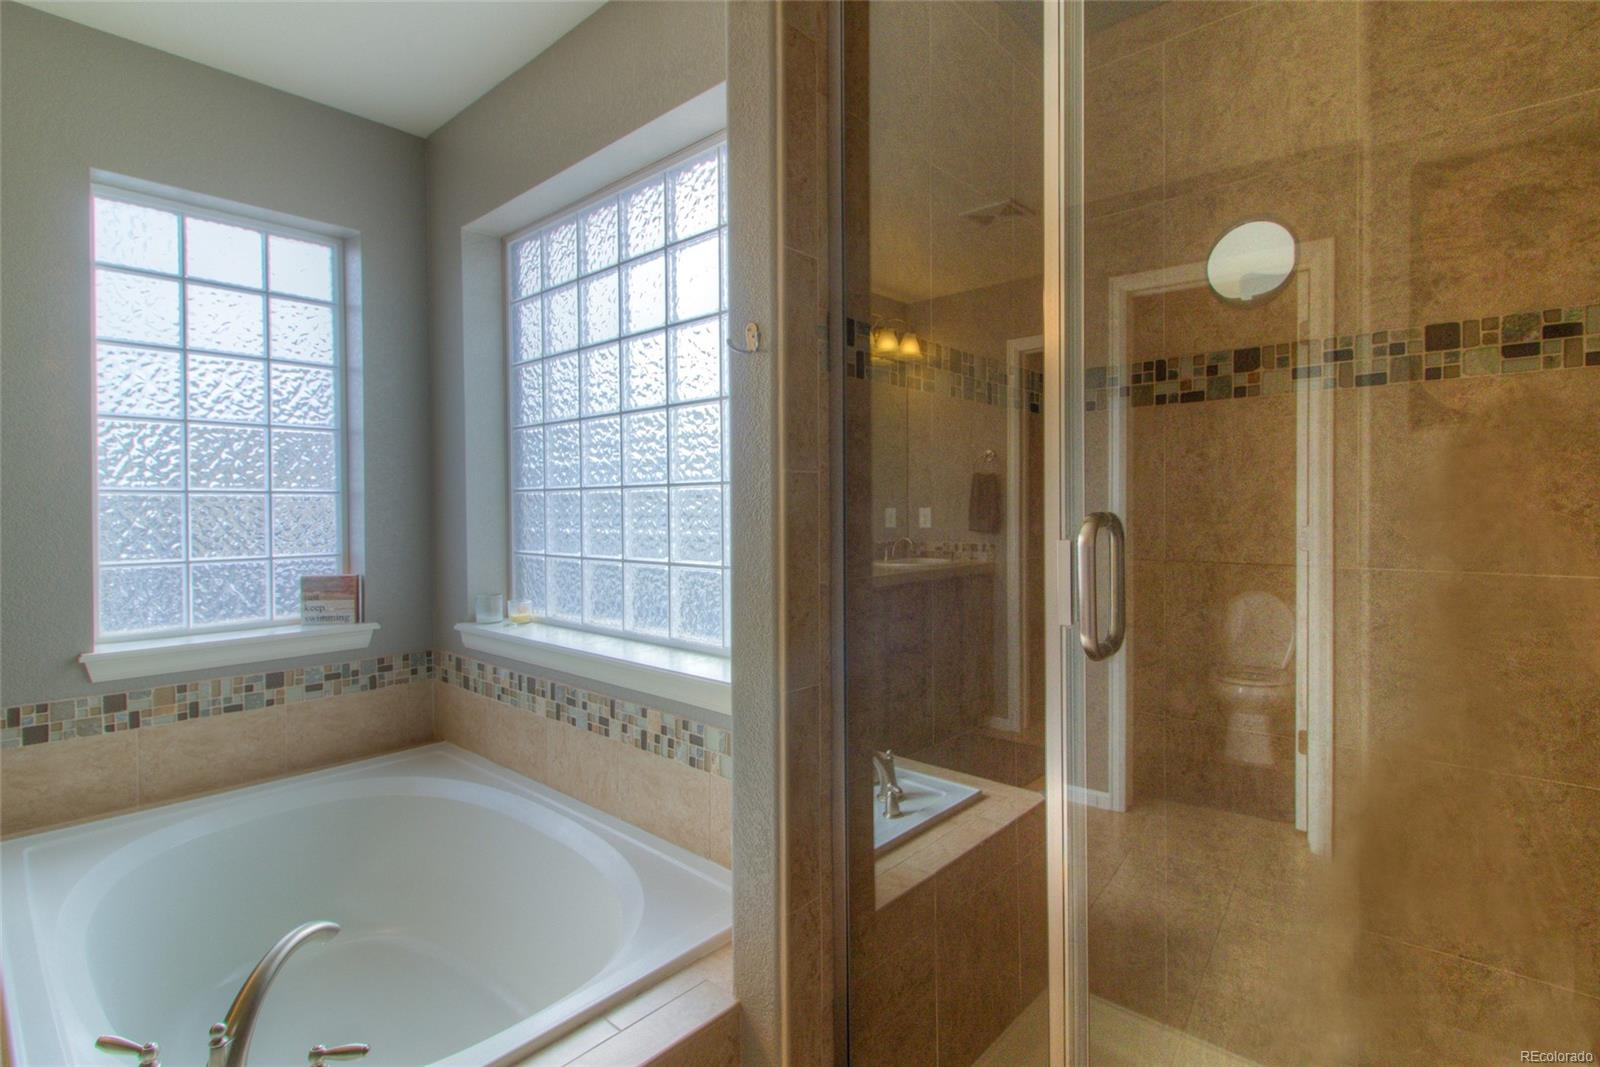 5 piece master bath with soaking tub and walk-in shower